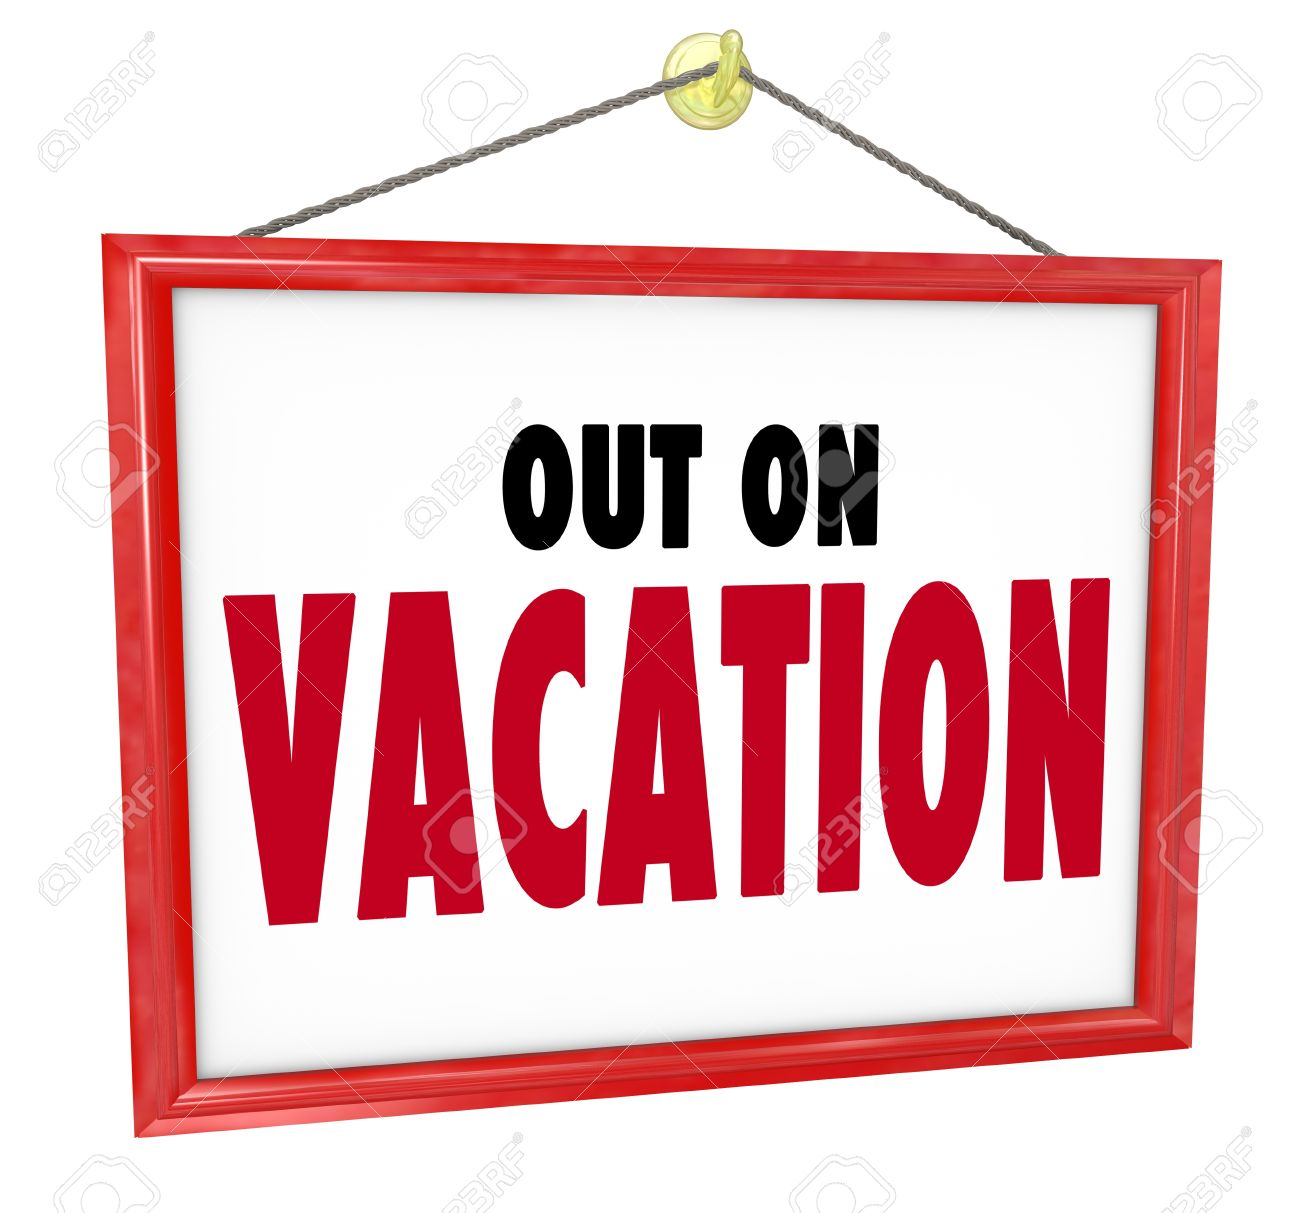 Out On Vacation Words On Hanging Sign For Store Window Or Office.